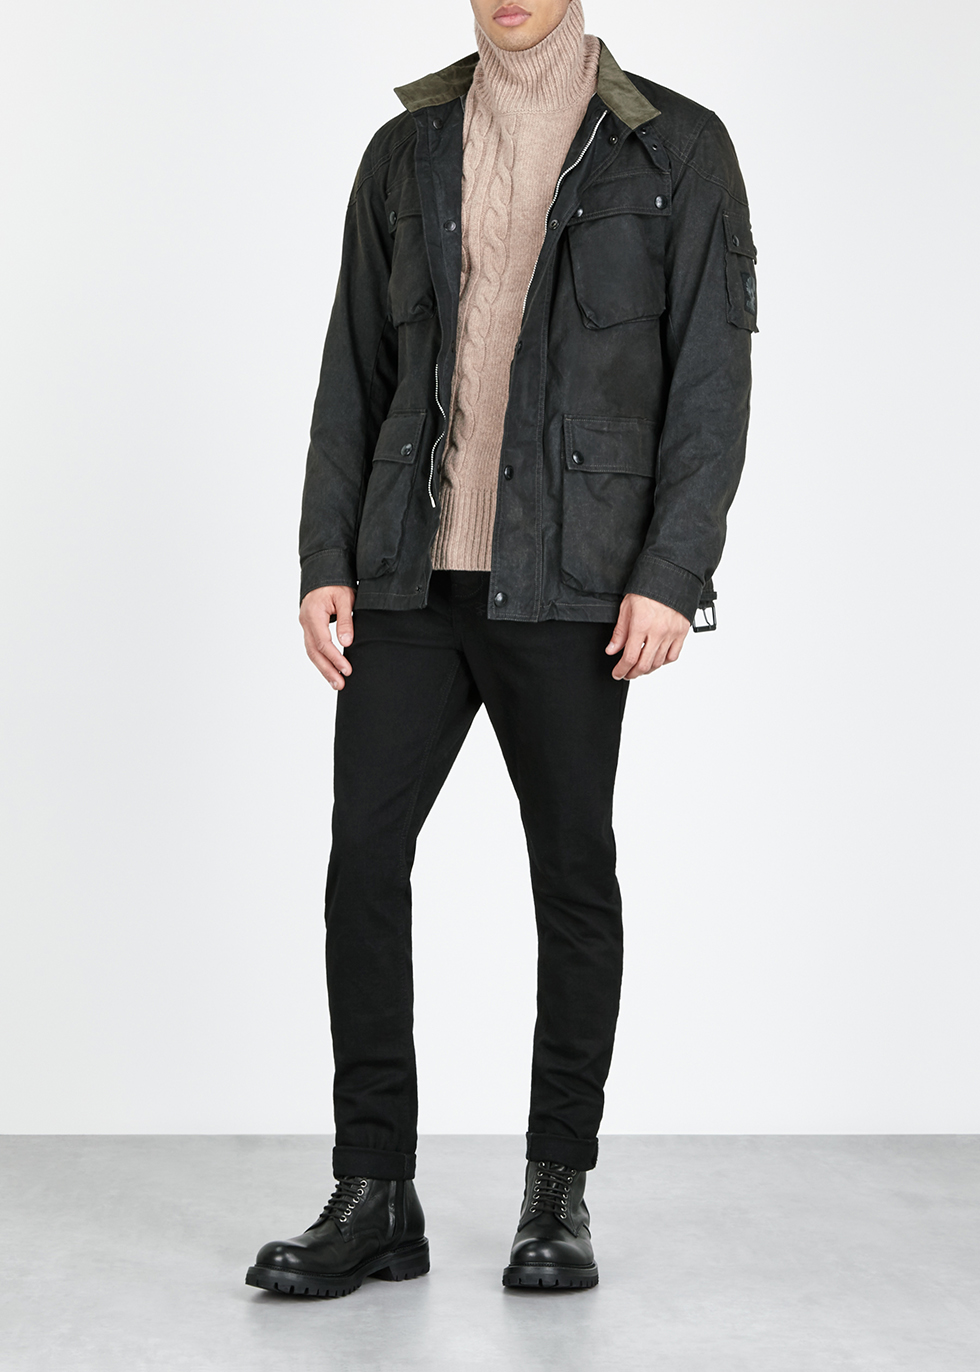 f73ba8e0 Belstaff Leather Jackets, Coats, T-Shirts - Harvey Nichols